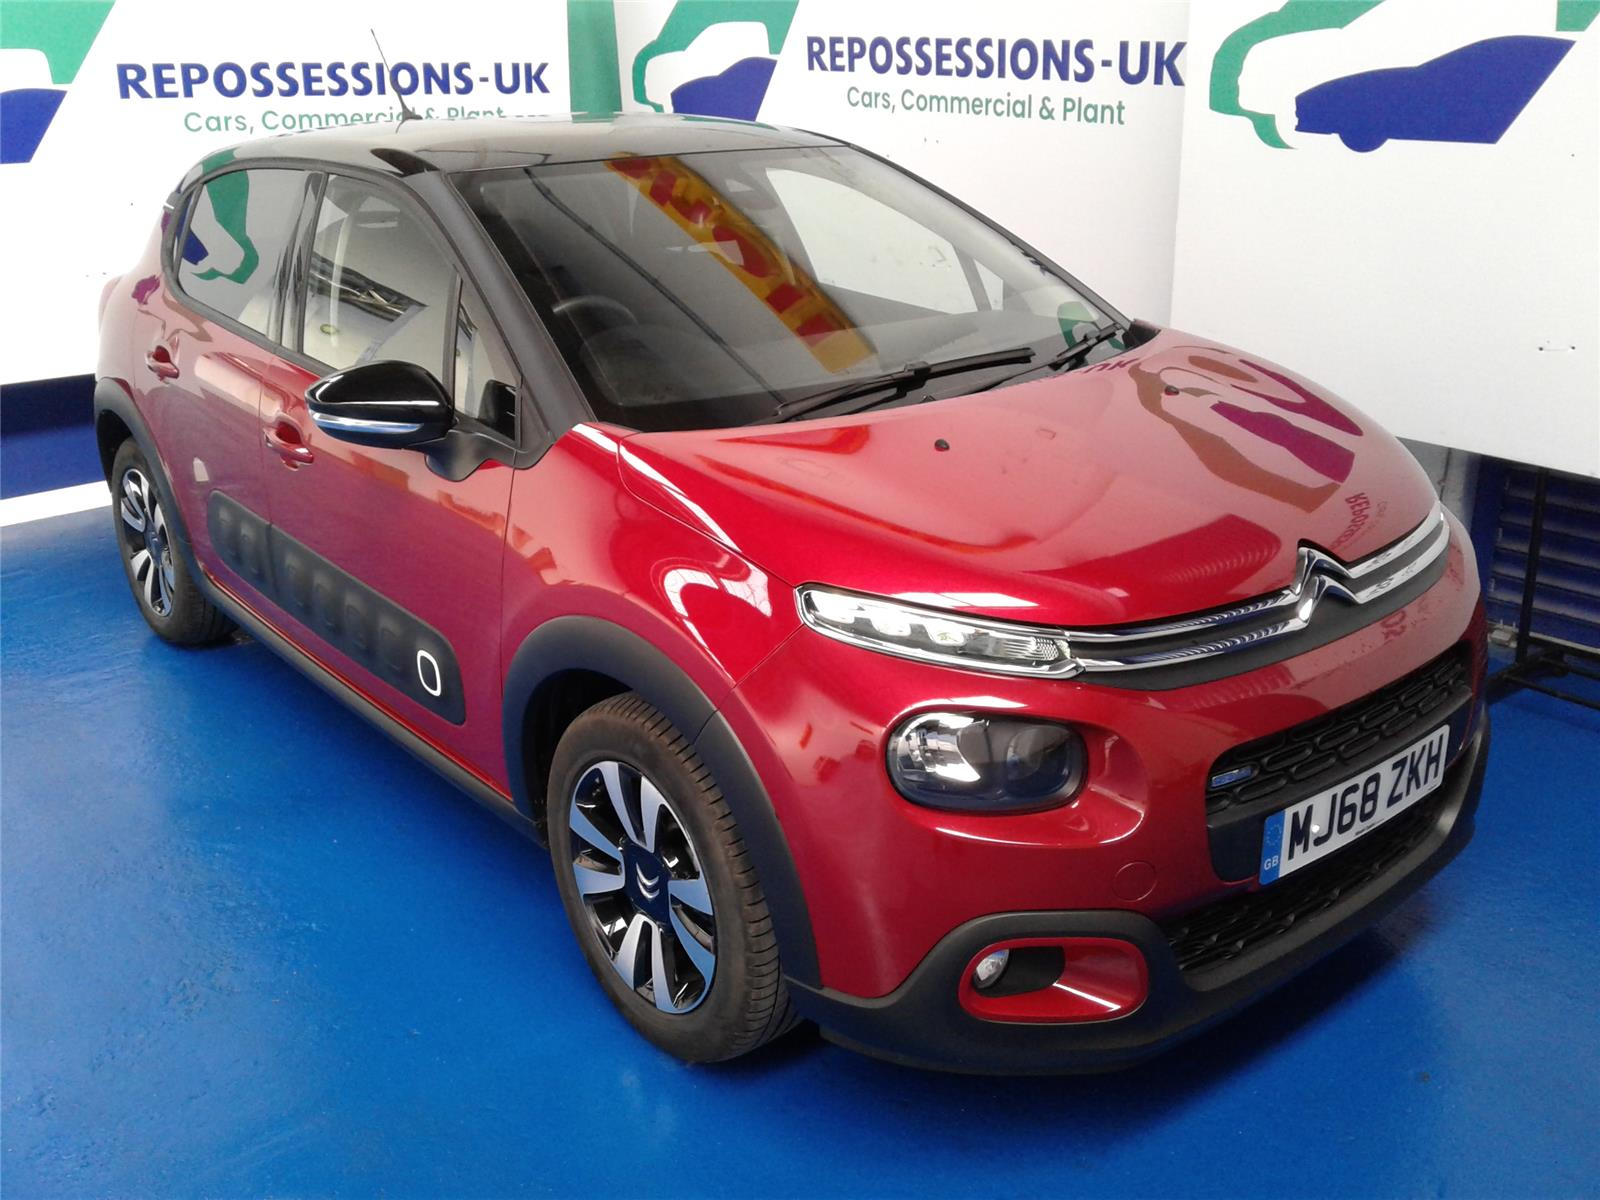 2018 CITROEN C3 PURETECH FLAIR 1199 PETROL MANUAL 5 Speed 5 DOOR HATCHBACK